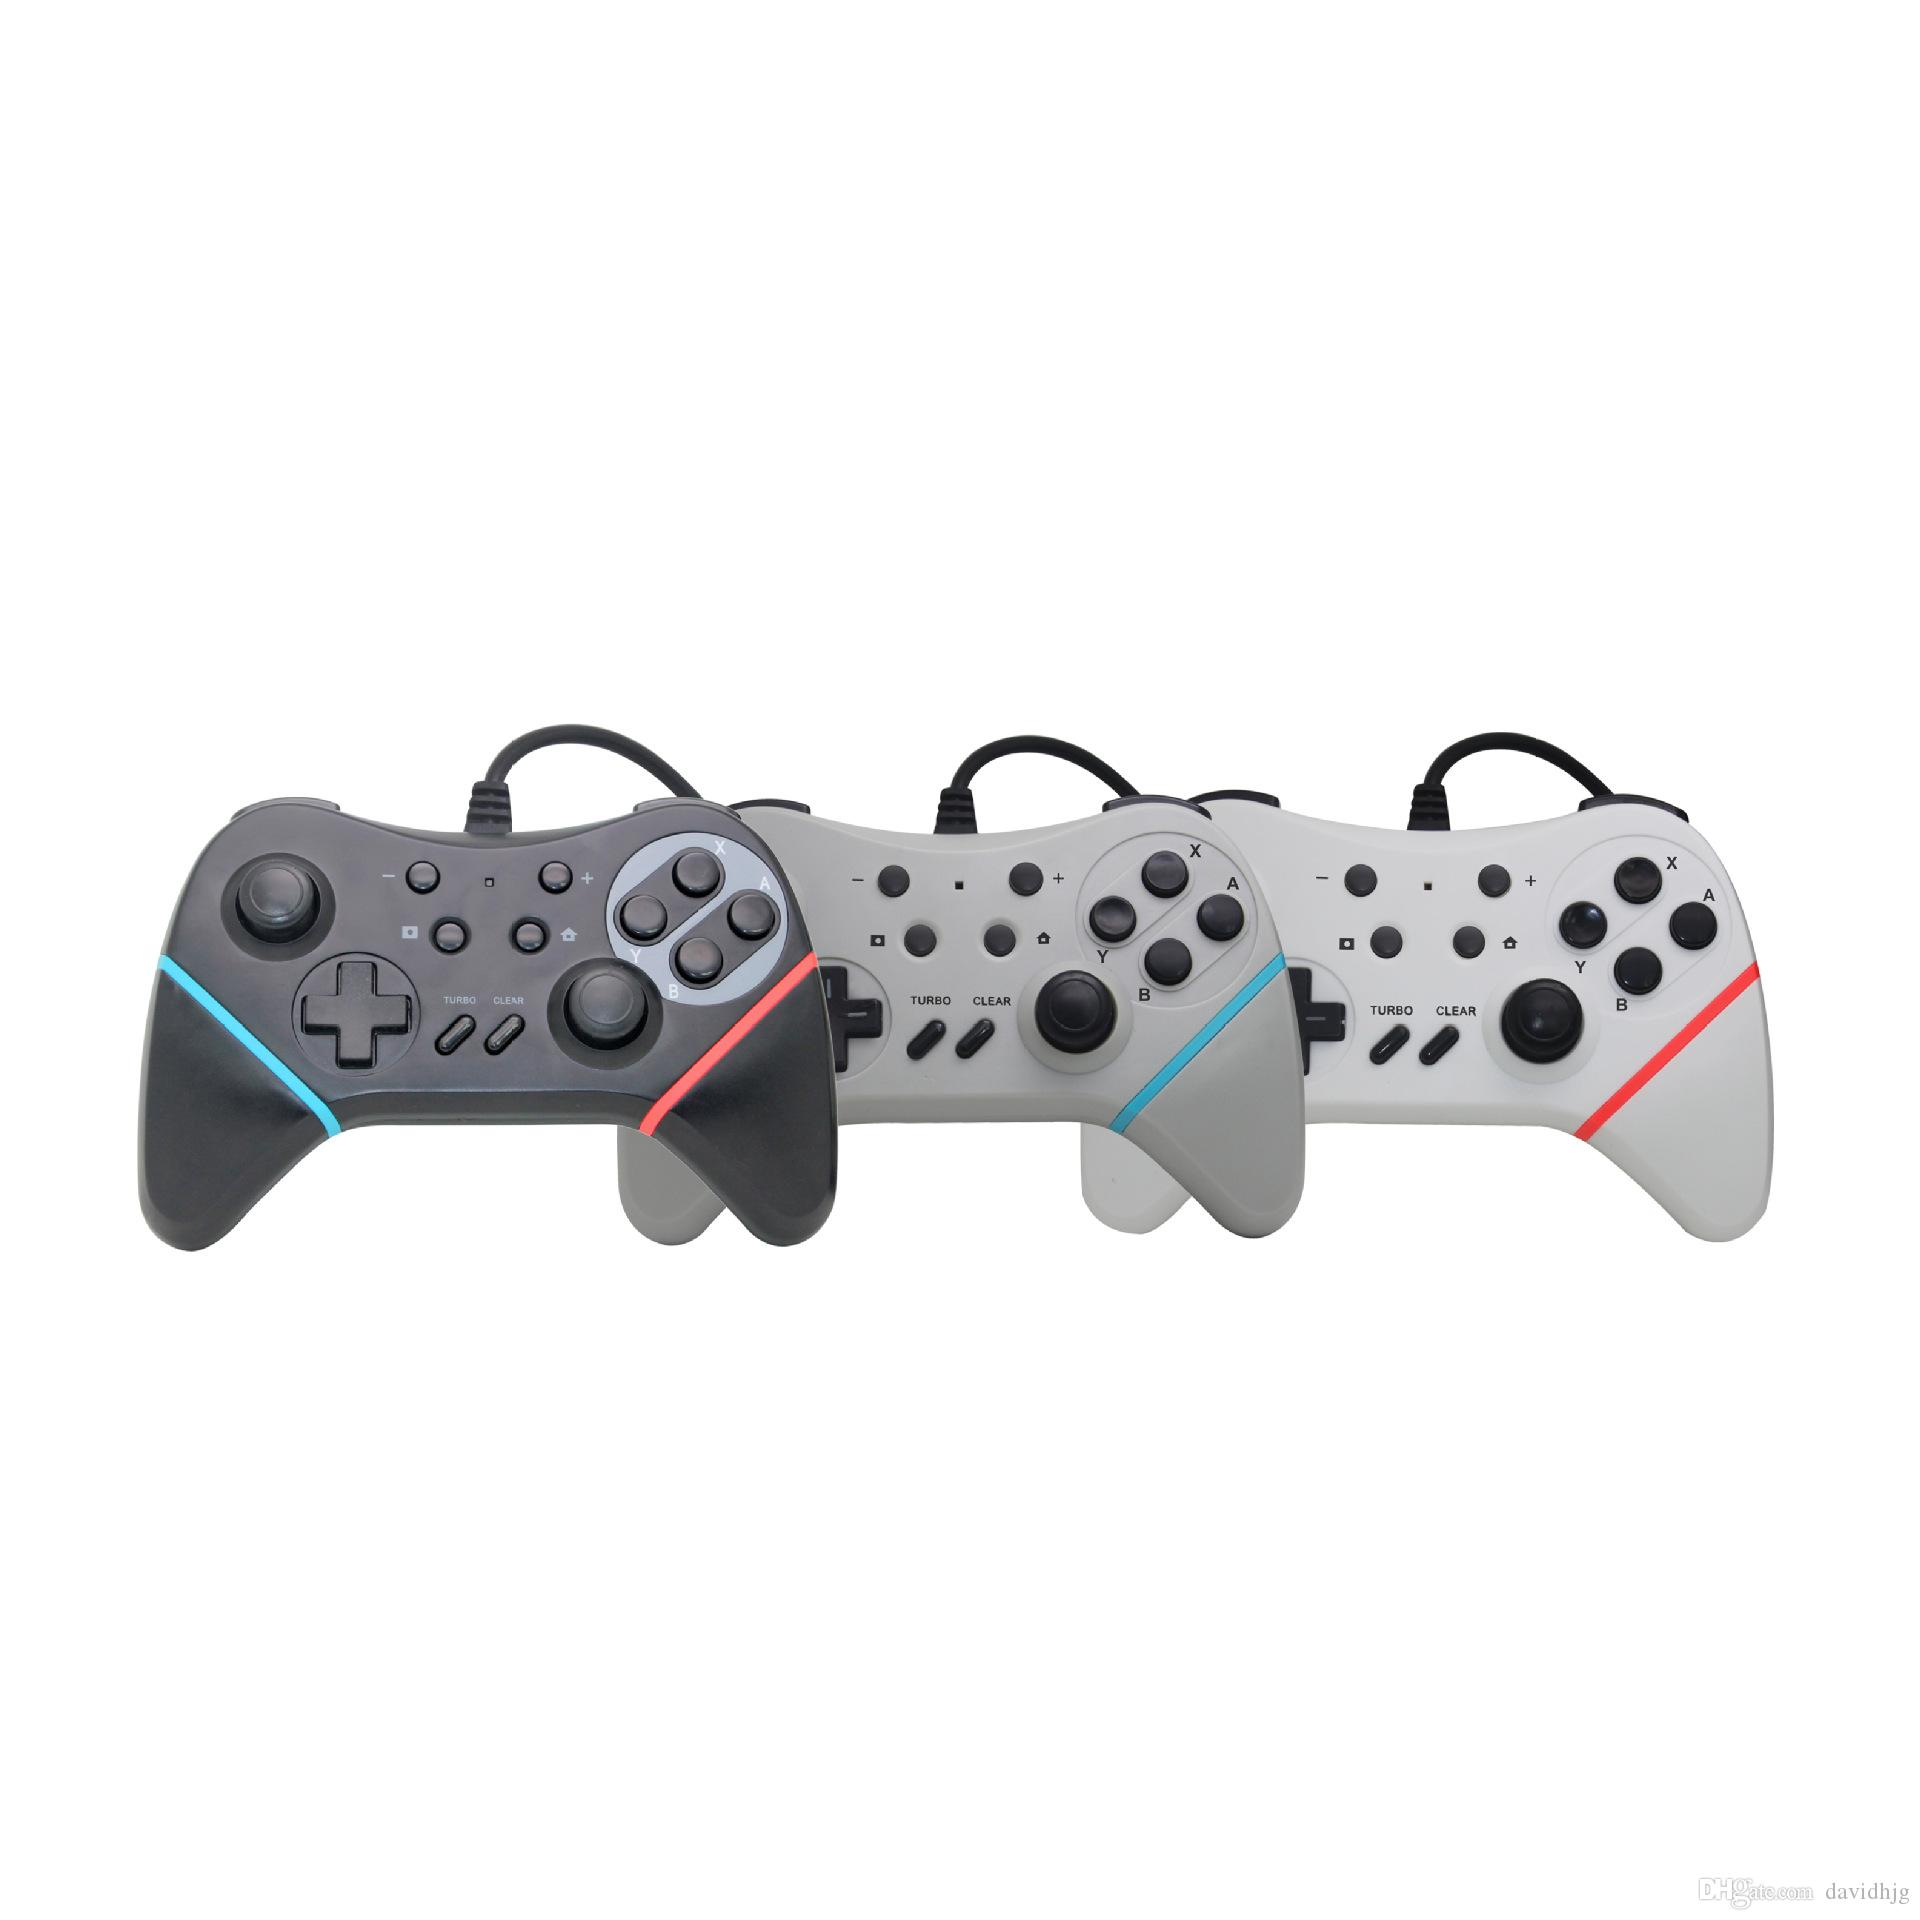 Newest Usb Wired Controller Gamepad For Nintendo Nintend Switch Ns Logitech F310 Support And Pc Games Gaming Play With Turbo Button Selling Old Electronics Best